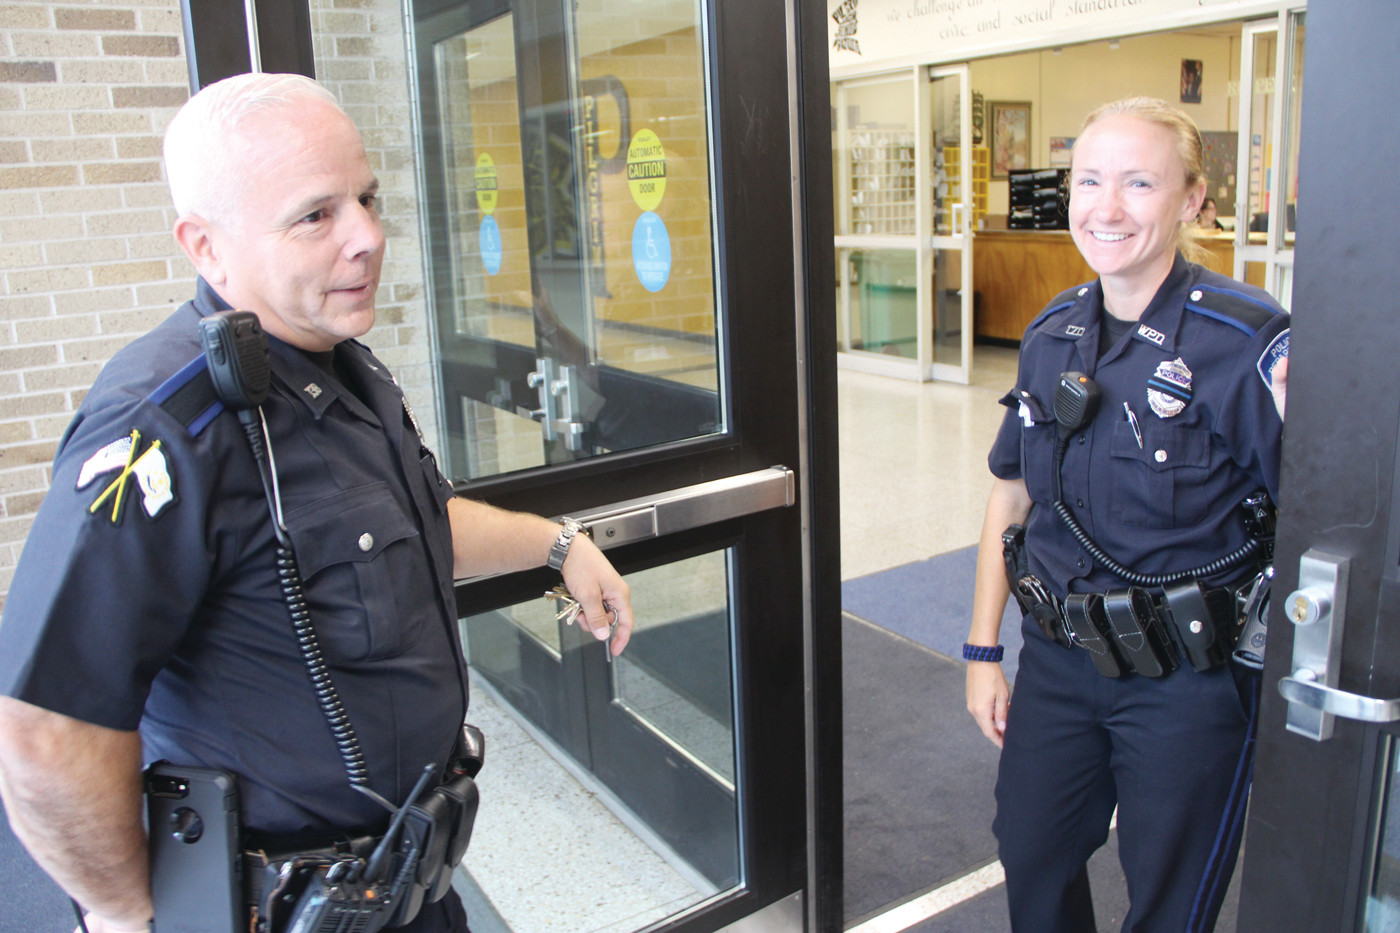 SHOWING HER THE ROPES: Dennis Amerantes, who after a 30-year career with Warwick Police and most recently as the school service officer at Pilgrim will retire in October, shows officer Jill Marshall around the building.